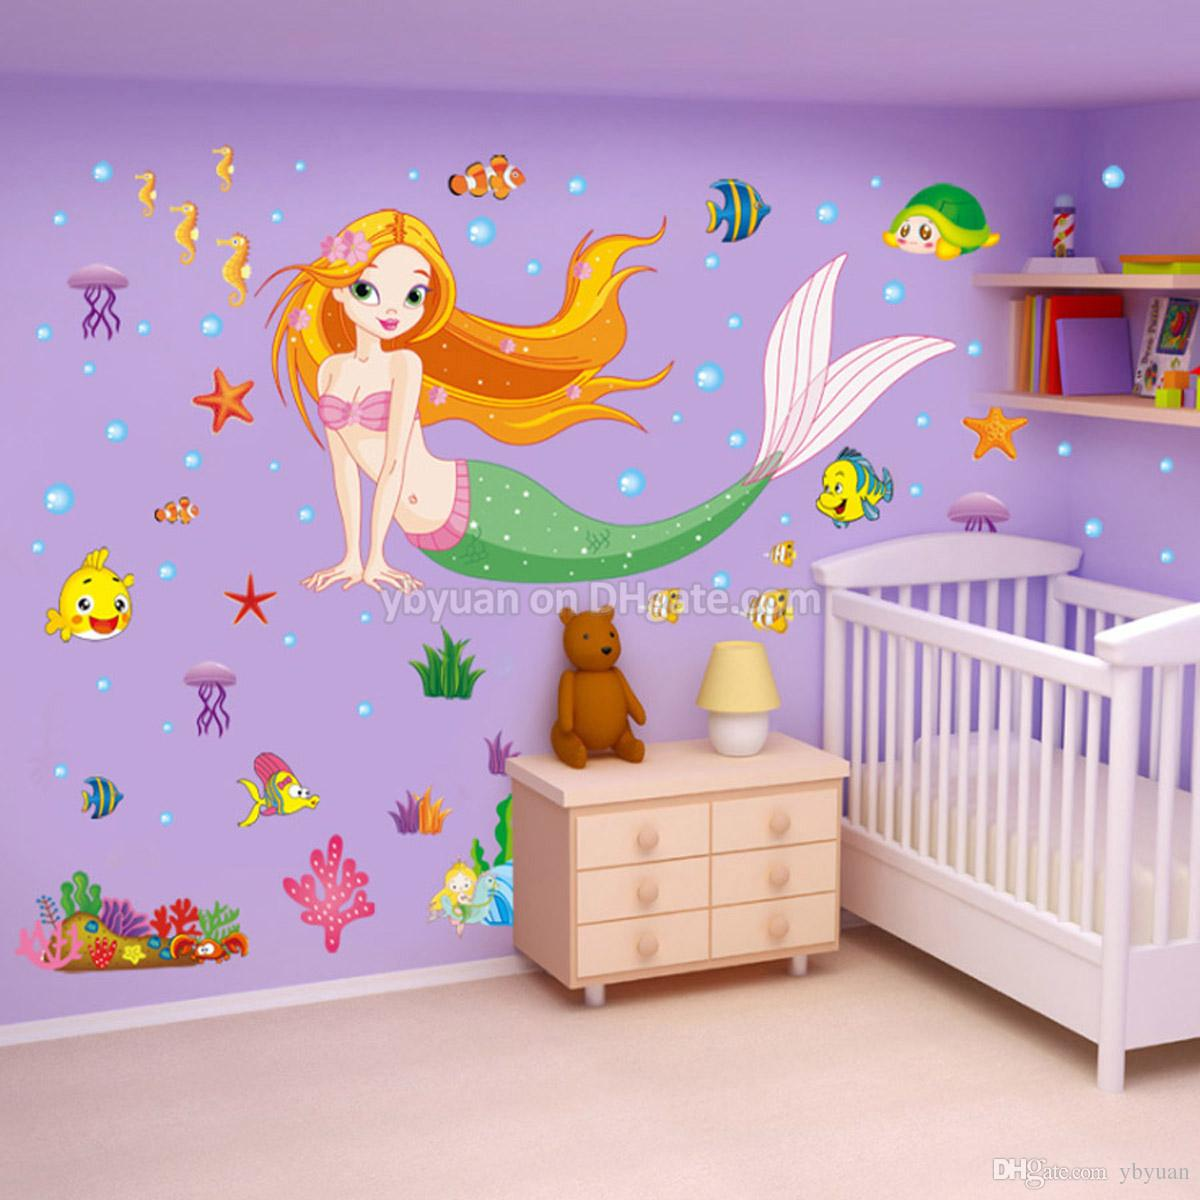 Removable mermaid wall decals flatfish stickers children living removable mermaid wall decals flatfish stickers children living room turtle sticker tv background jellyfish sticker kids bedroom decoration sticker murals amipublicfo Image collections